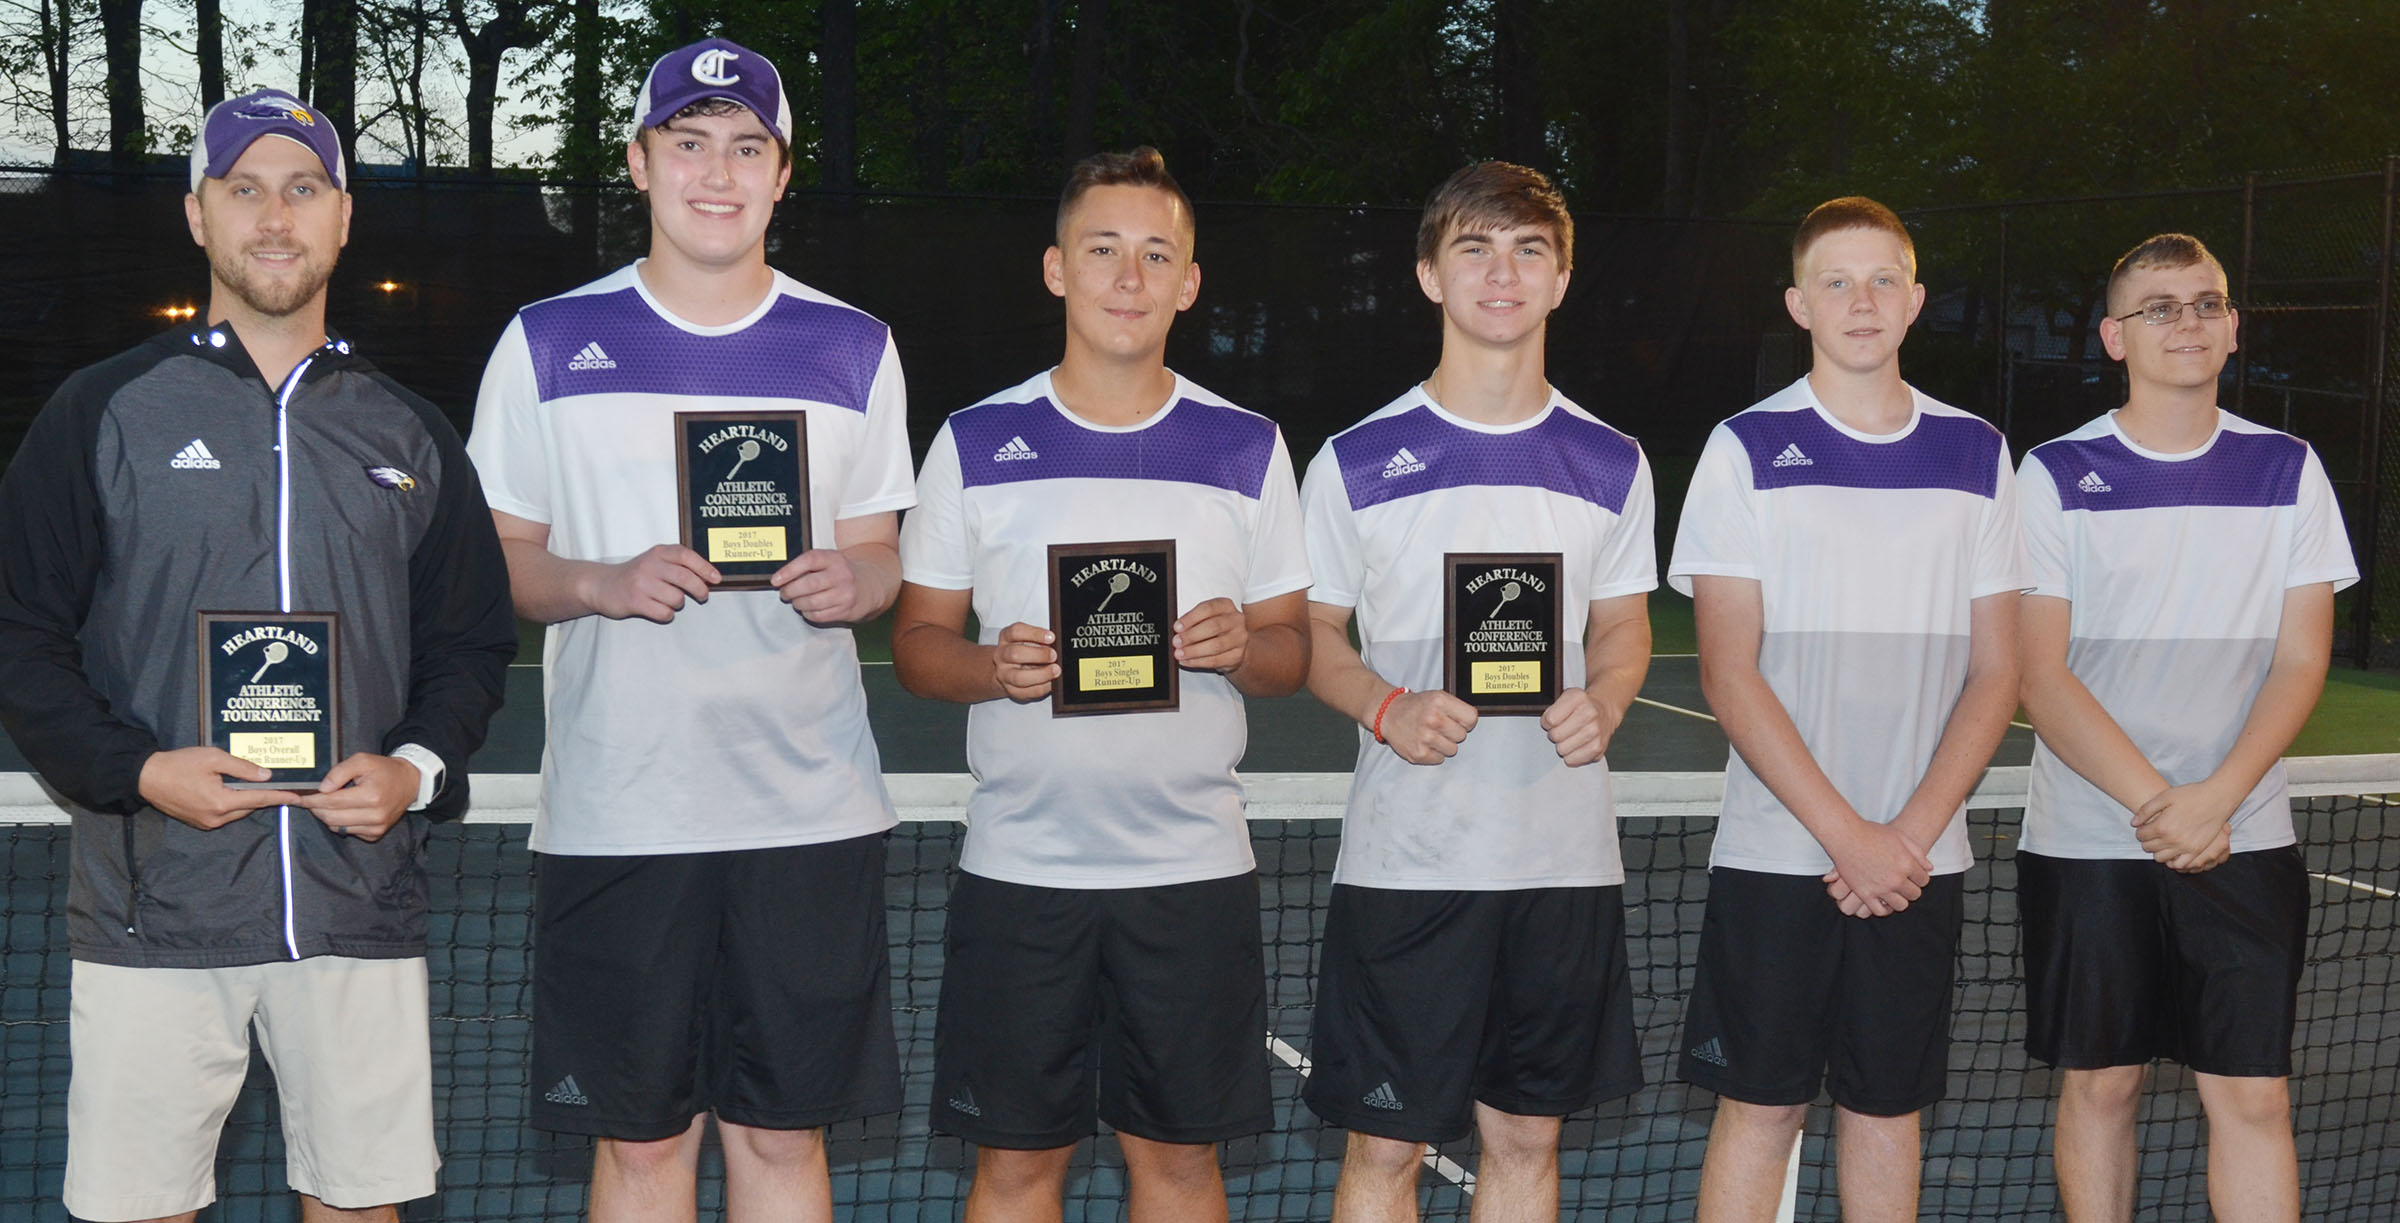 CHS boys' tennis team is this year's Heartland Conference runners-up. From left are coach Tyler Hardy, senior Zack Settle, juniors Cody Davis and Cass Kidwell, freshman Patrick Walker and sophomore Brandon Greer. Settle and Kidwell were also doubles runners-up and Davis was singles runner-up. Absent from the photo is junior Jackson Hunt.